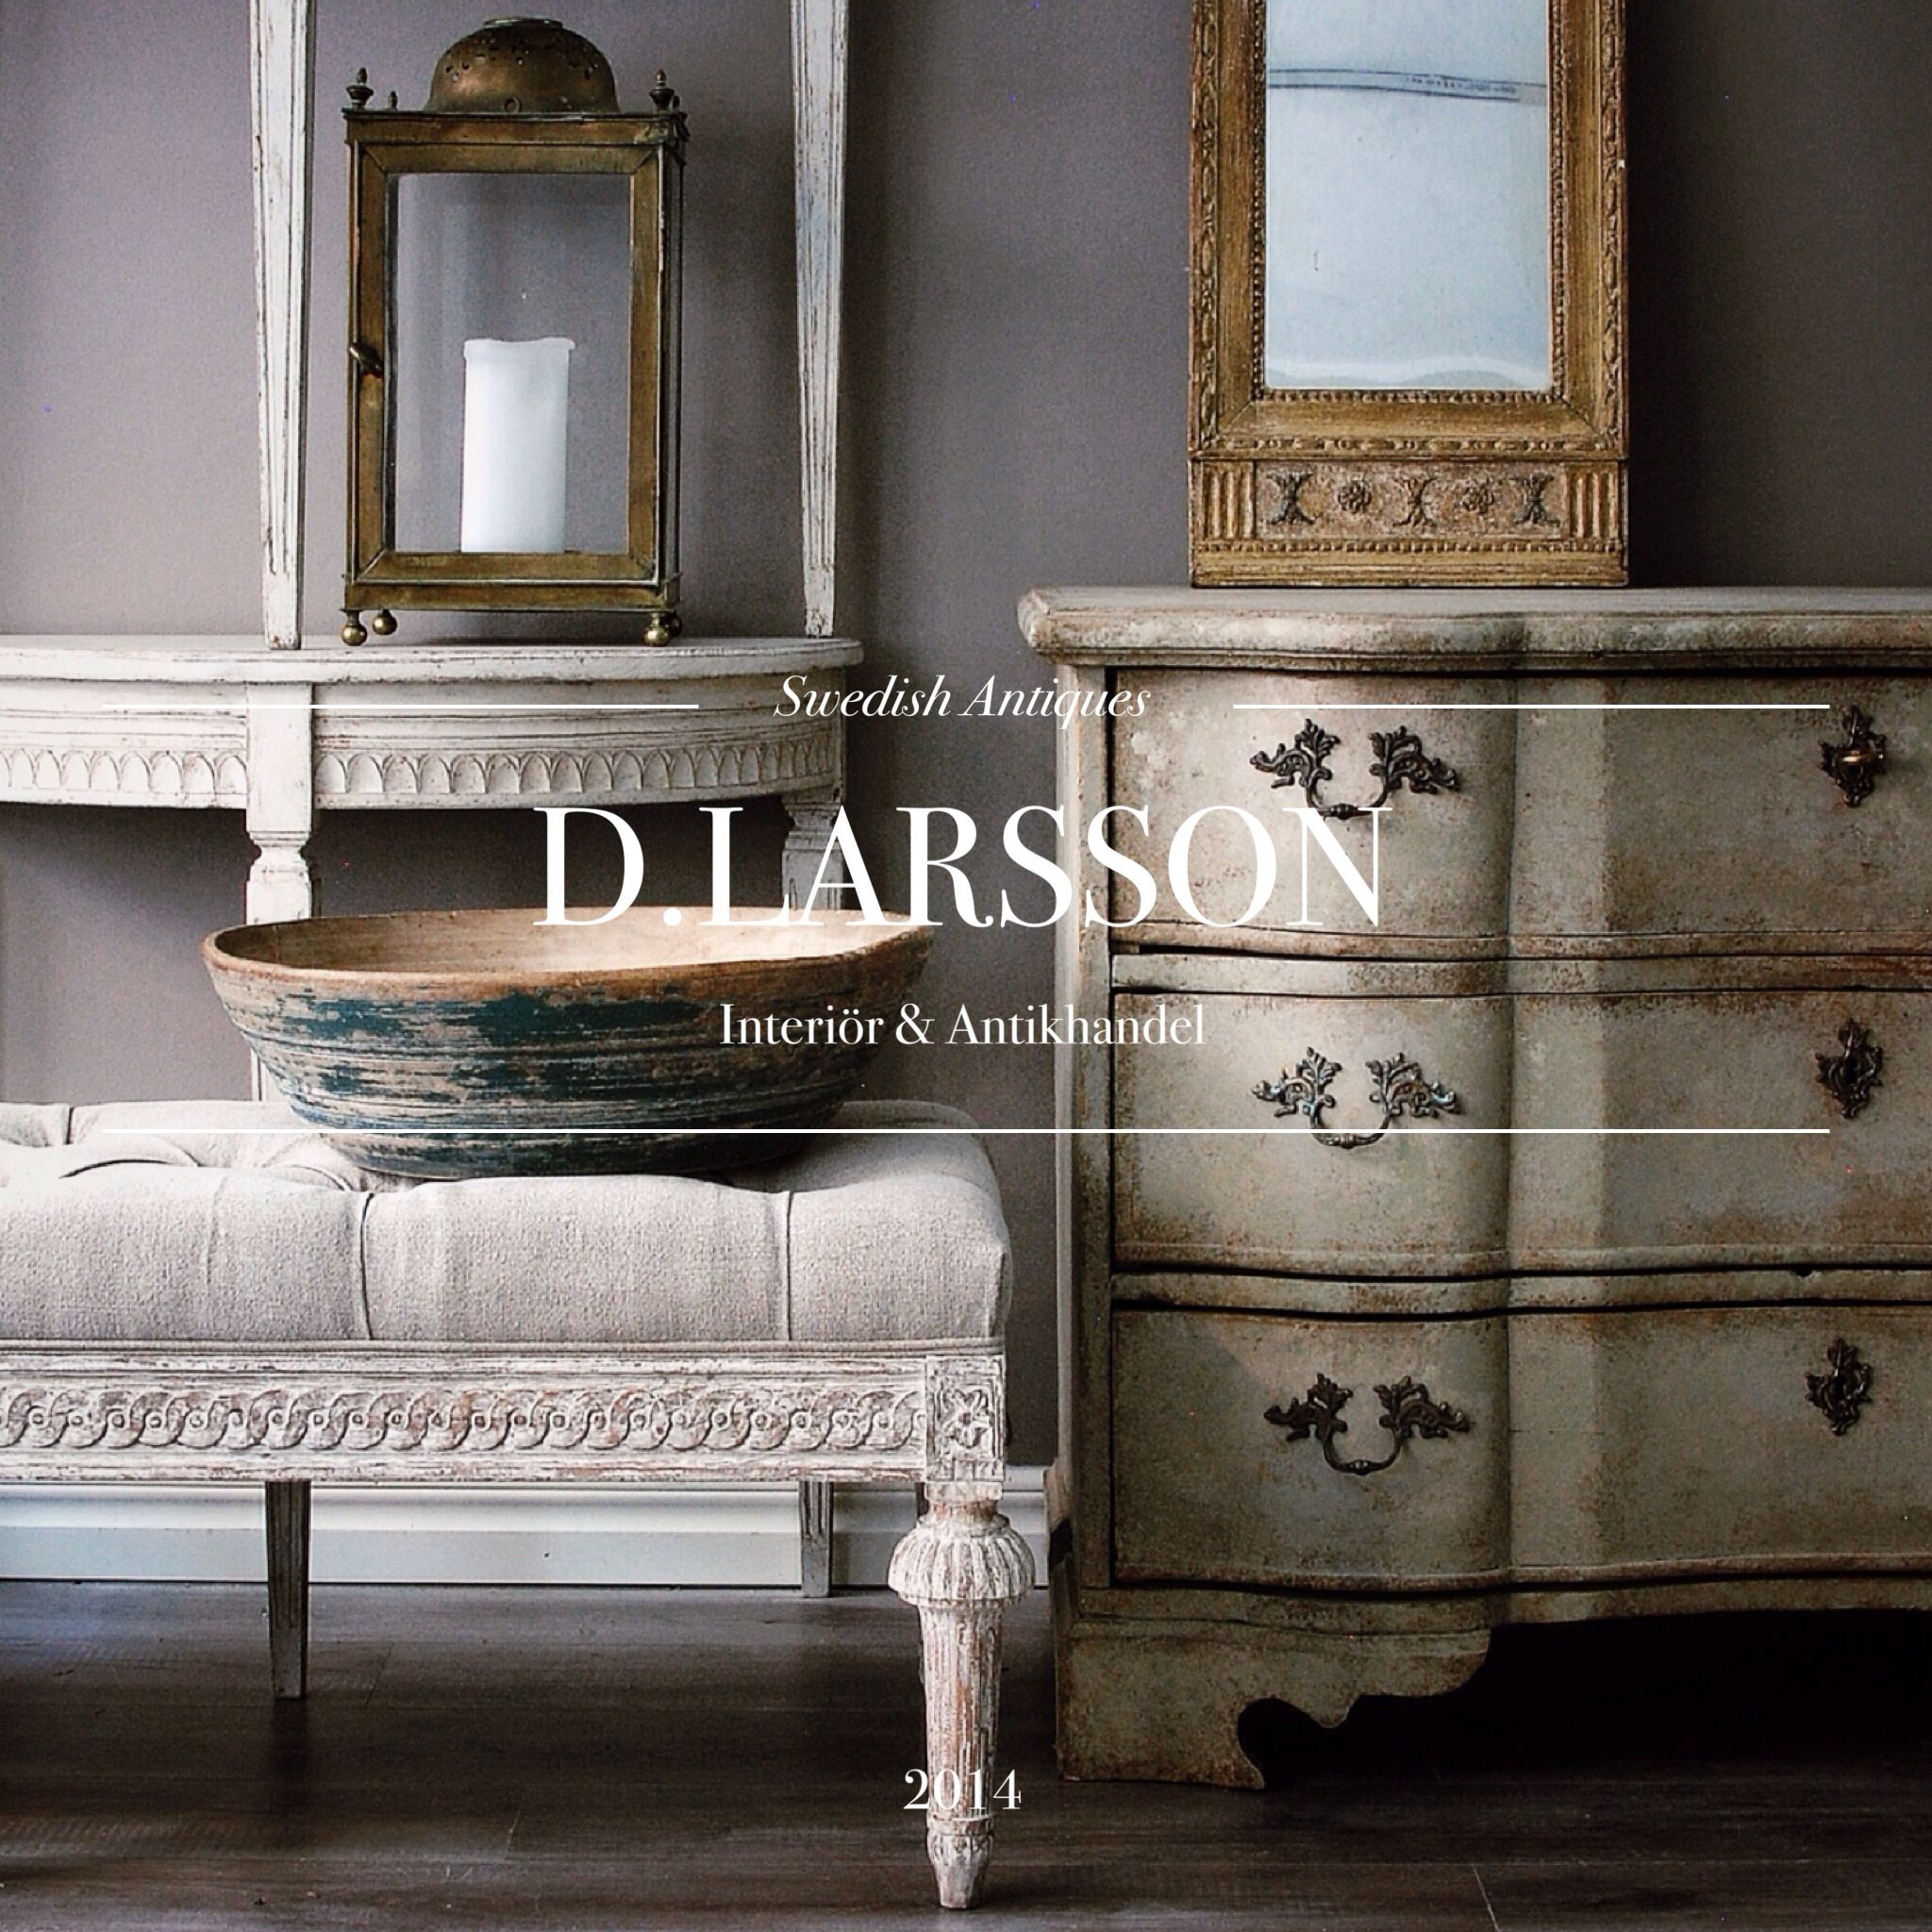 d larsson swedish antiques rustic romantic gustavian pinterest franz sischer landhausstil. Black Bedroom Furniture Sets. Home Design Ideas